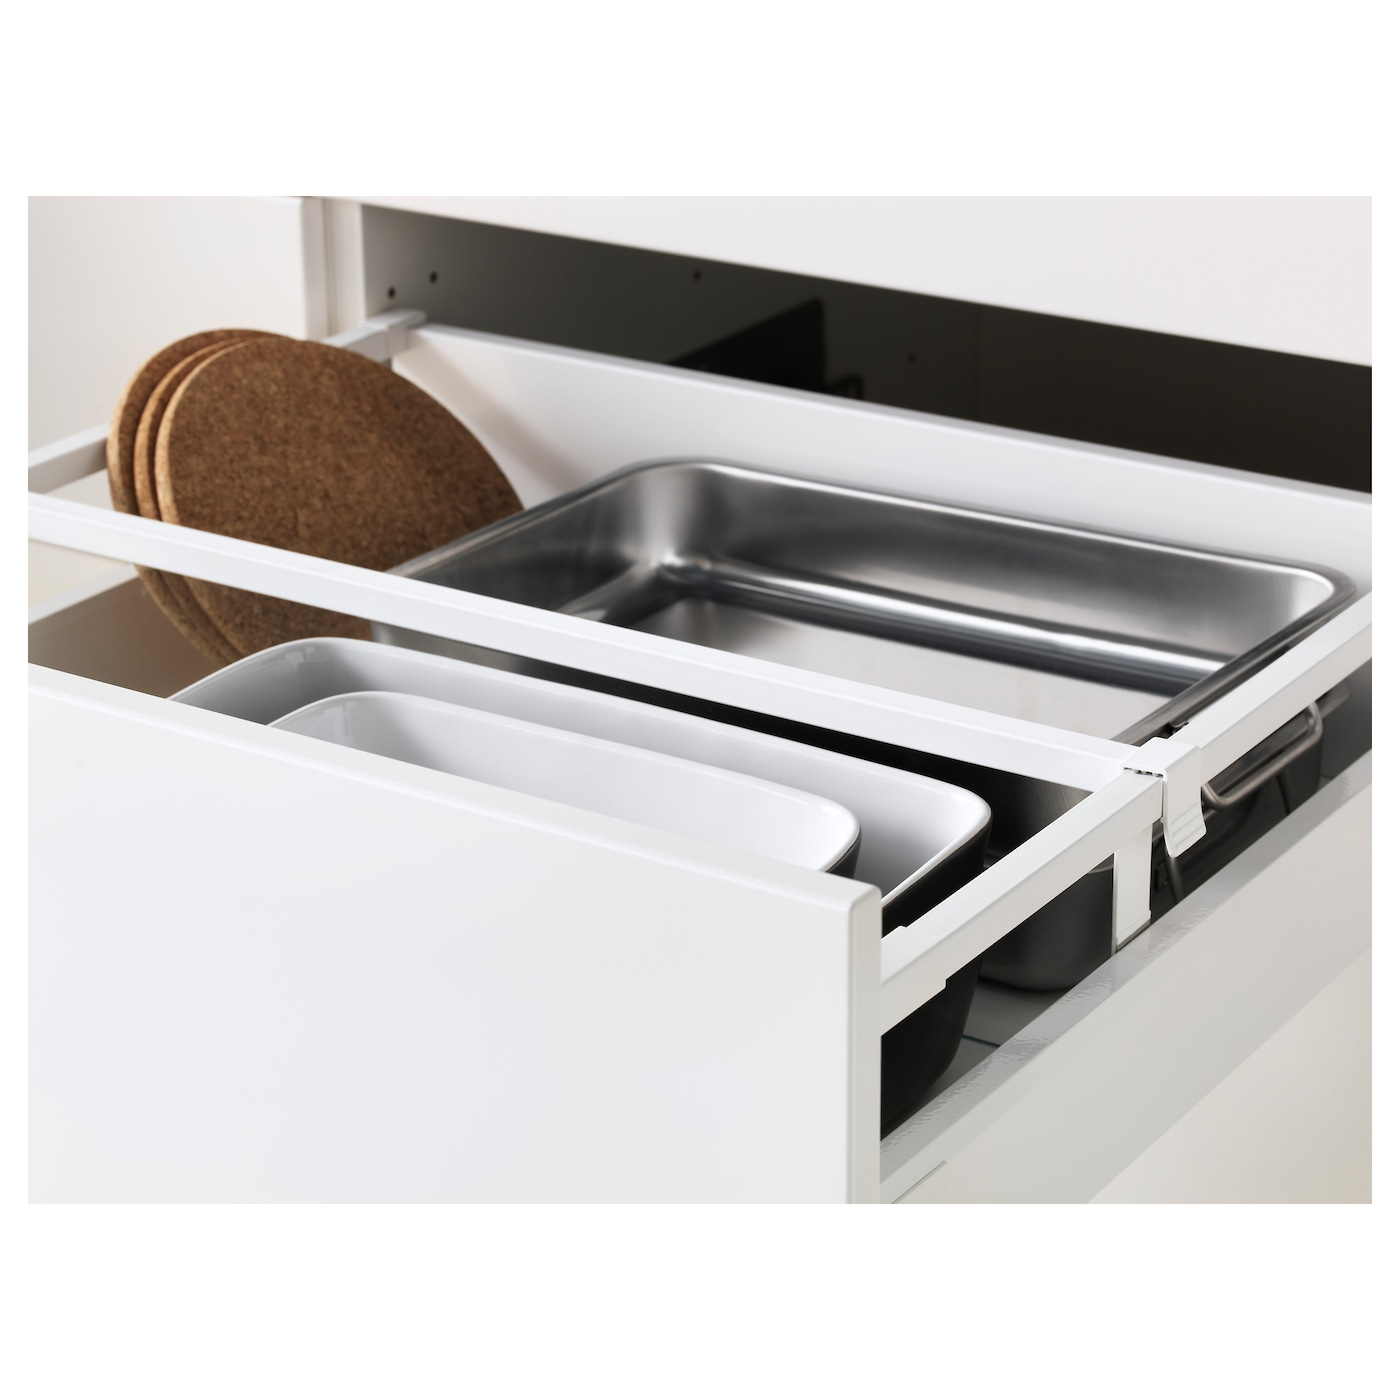 IKEA METOD/MAXIMERA high cab f oven/micro w dr/3 drwrs Sturdy frame construction, 18 mm thick.